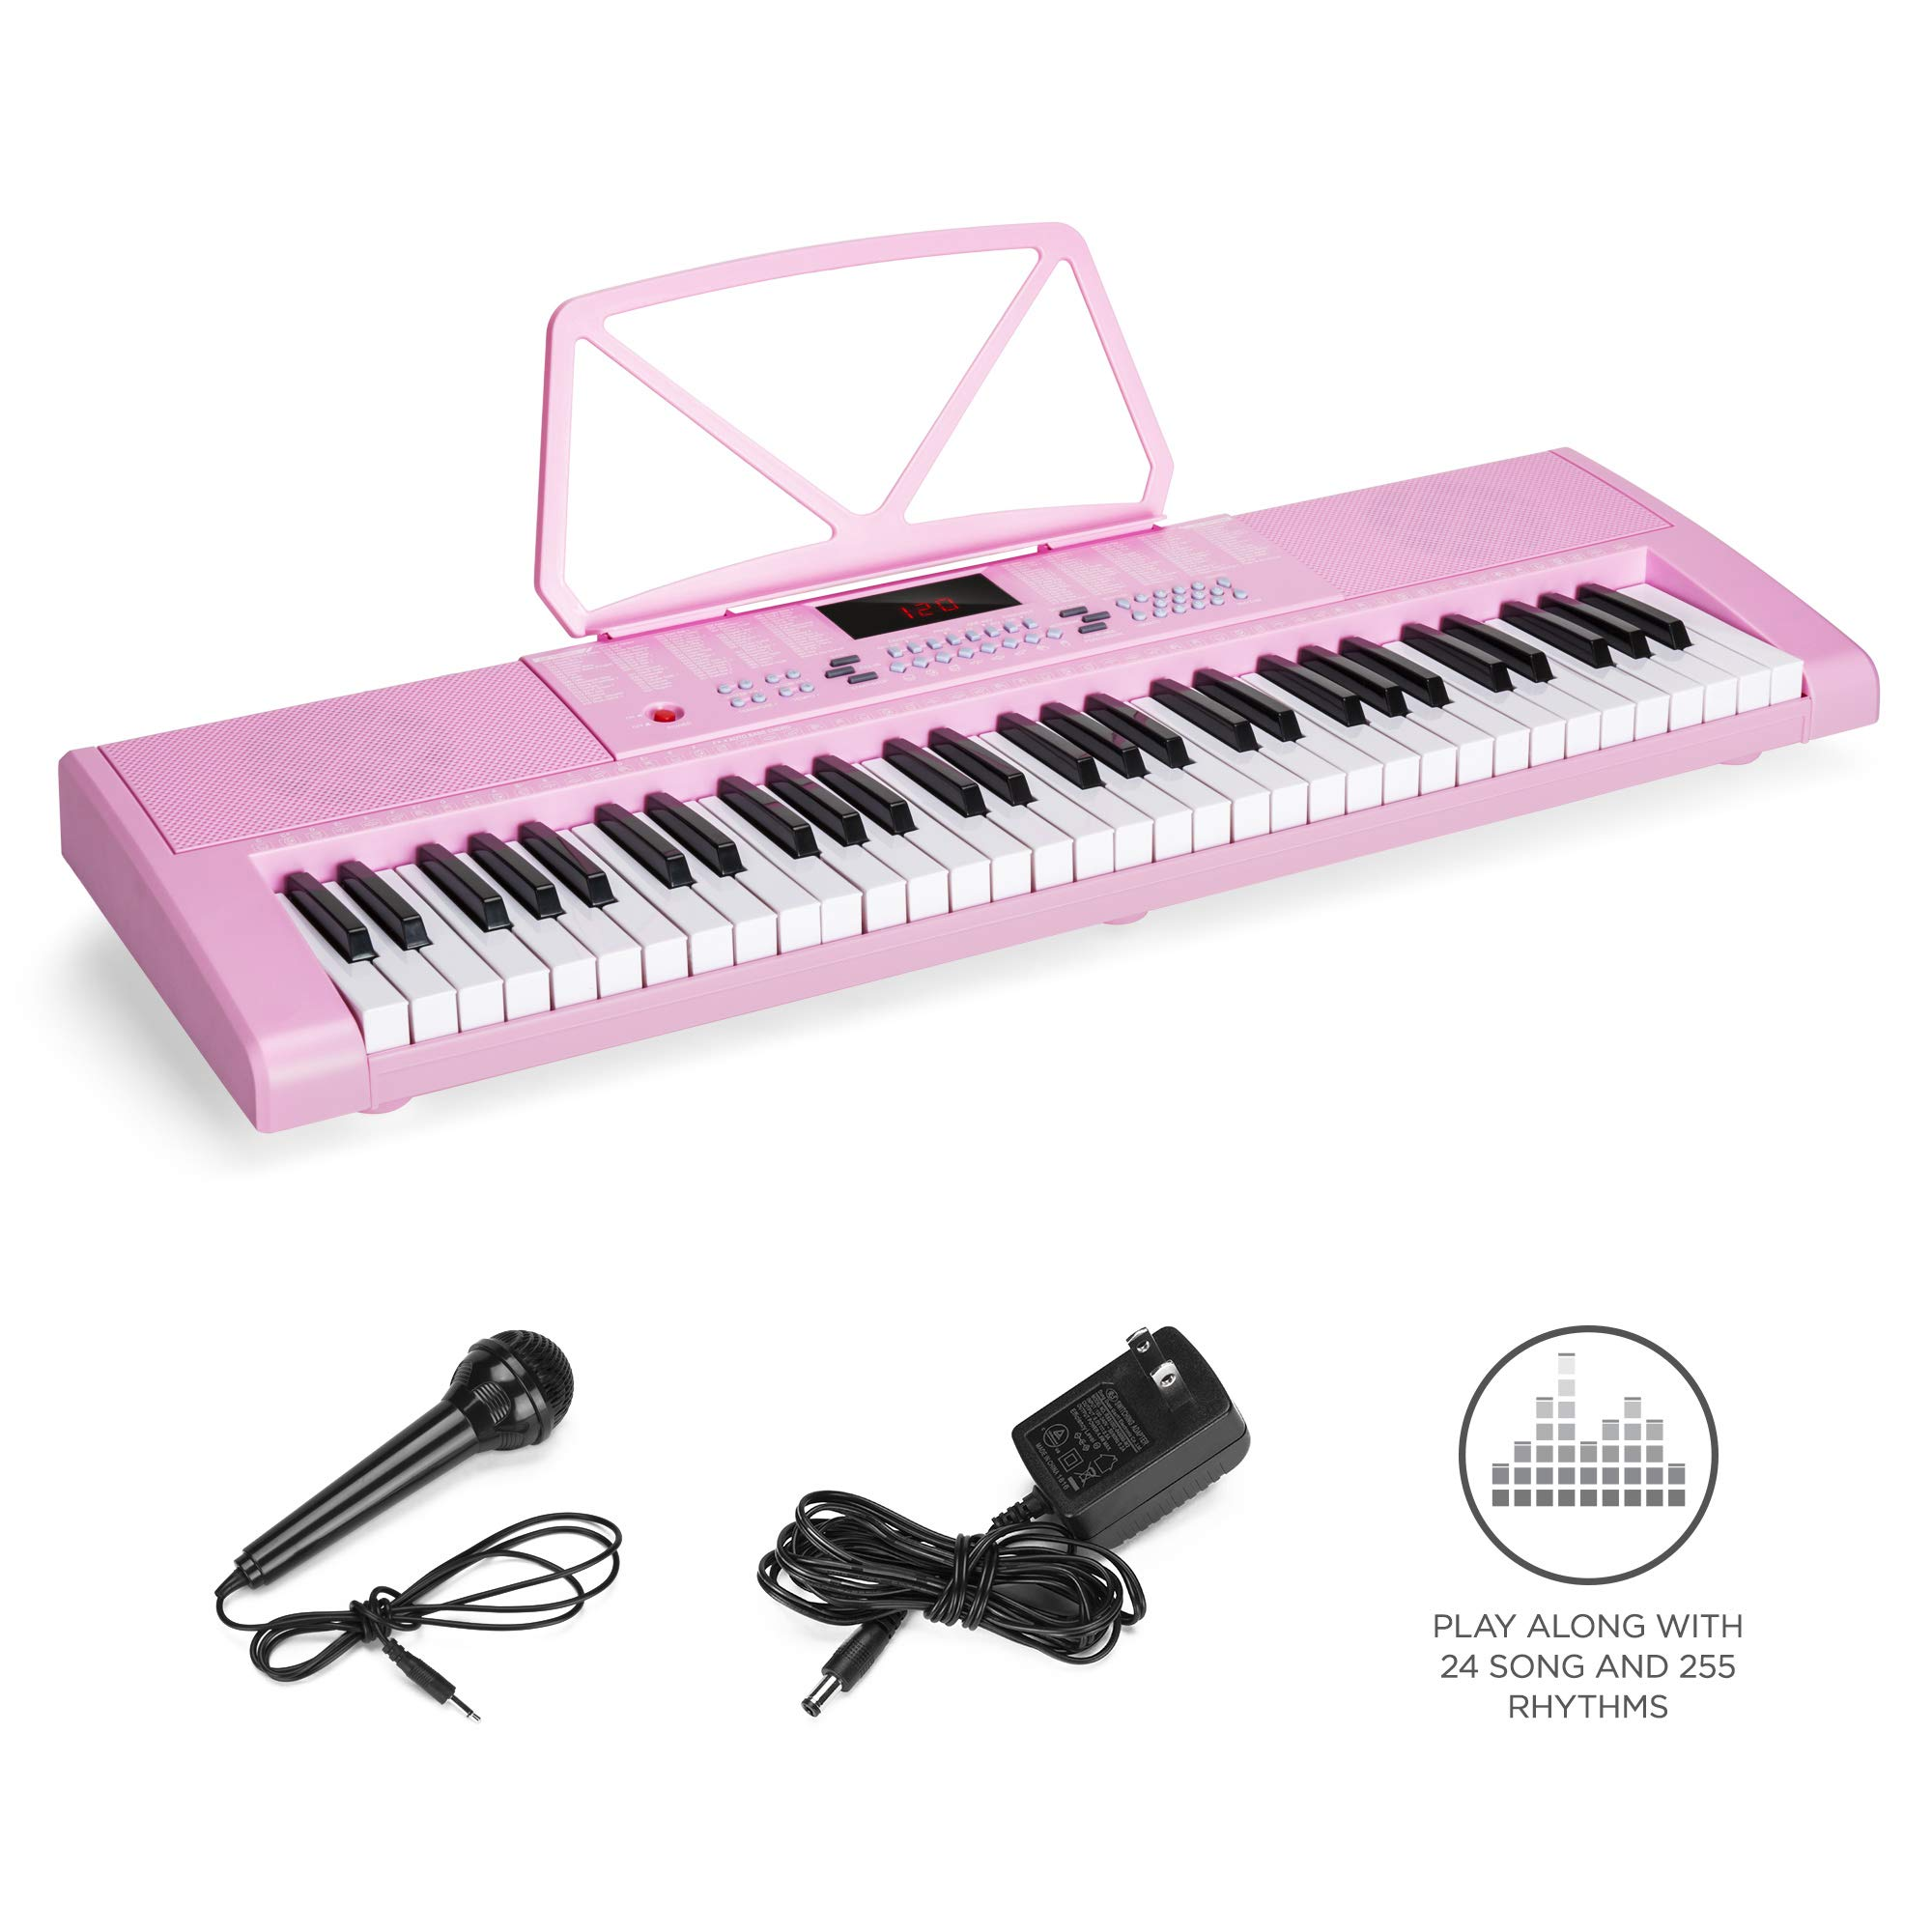 Best Choice Products 61-Key Portable Electronic Keyboard Piano with LED Screen, Record & Playback Function, Microphone, Headphone Jack (Pink) by Best Choice Products (Image #1)